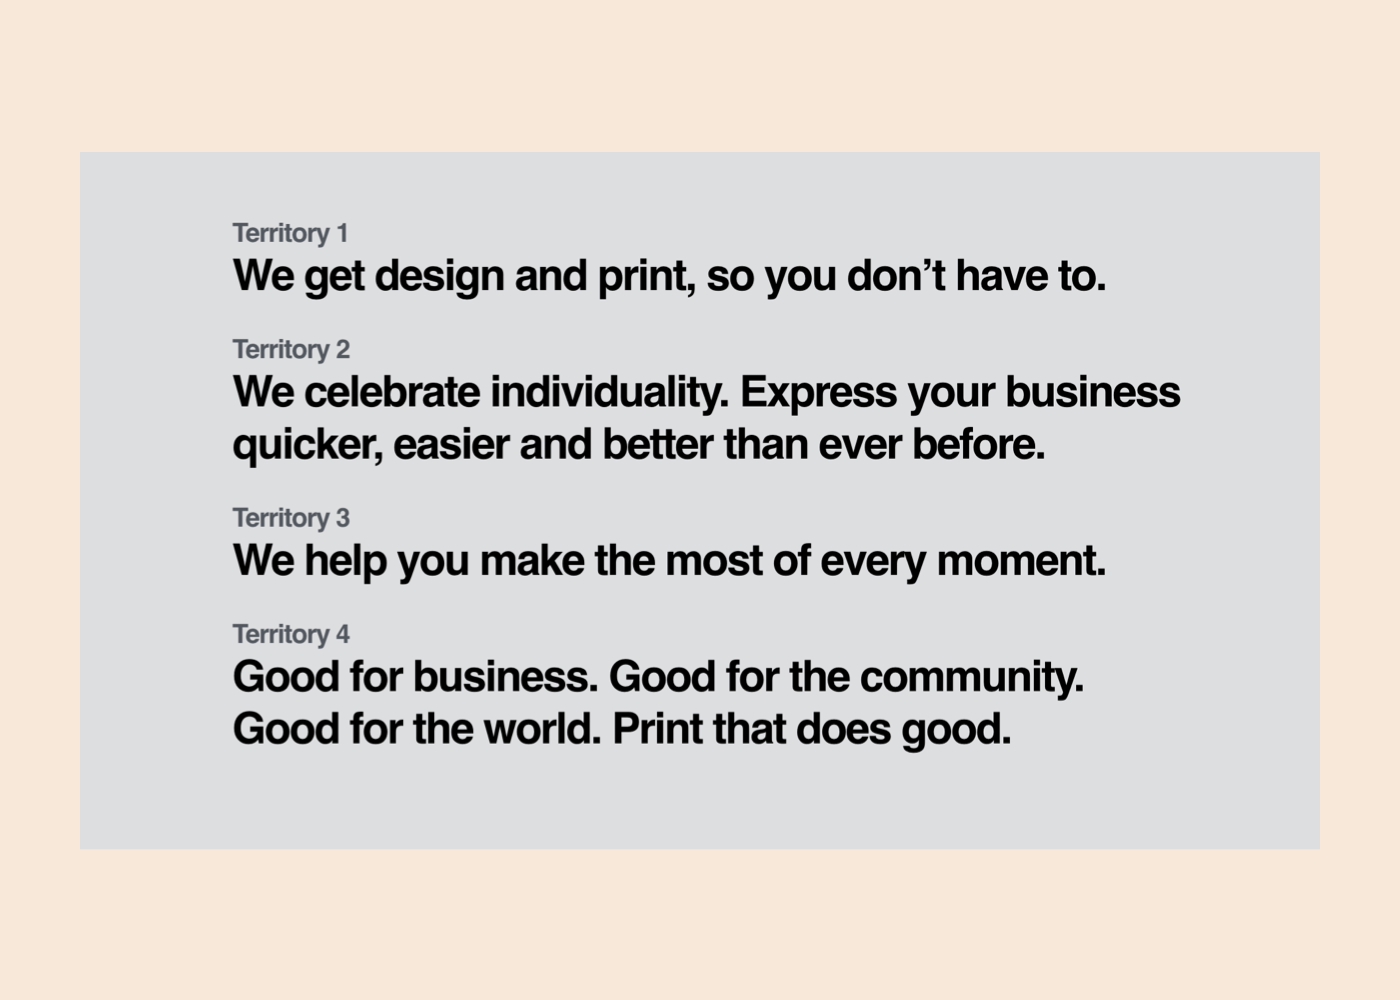 Goodprint Branding Brand Territories.png